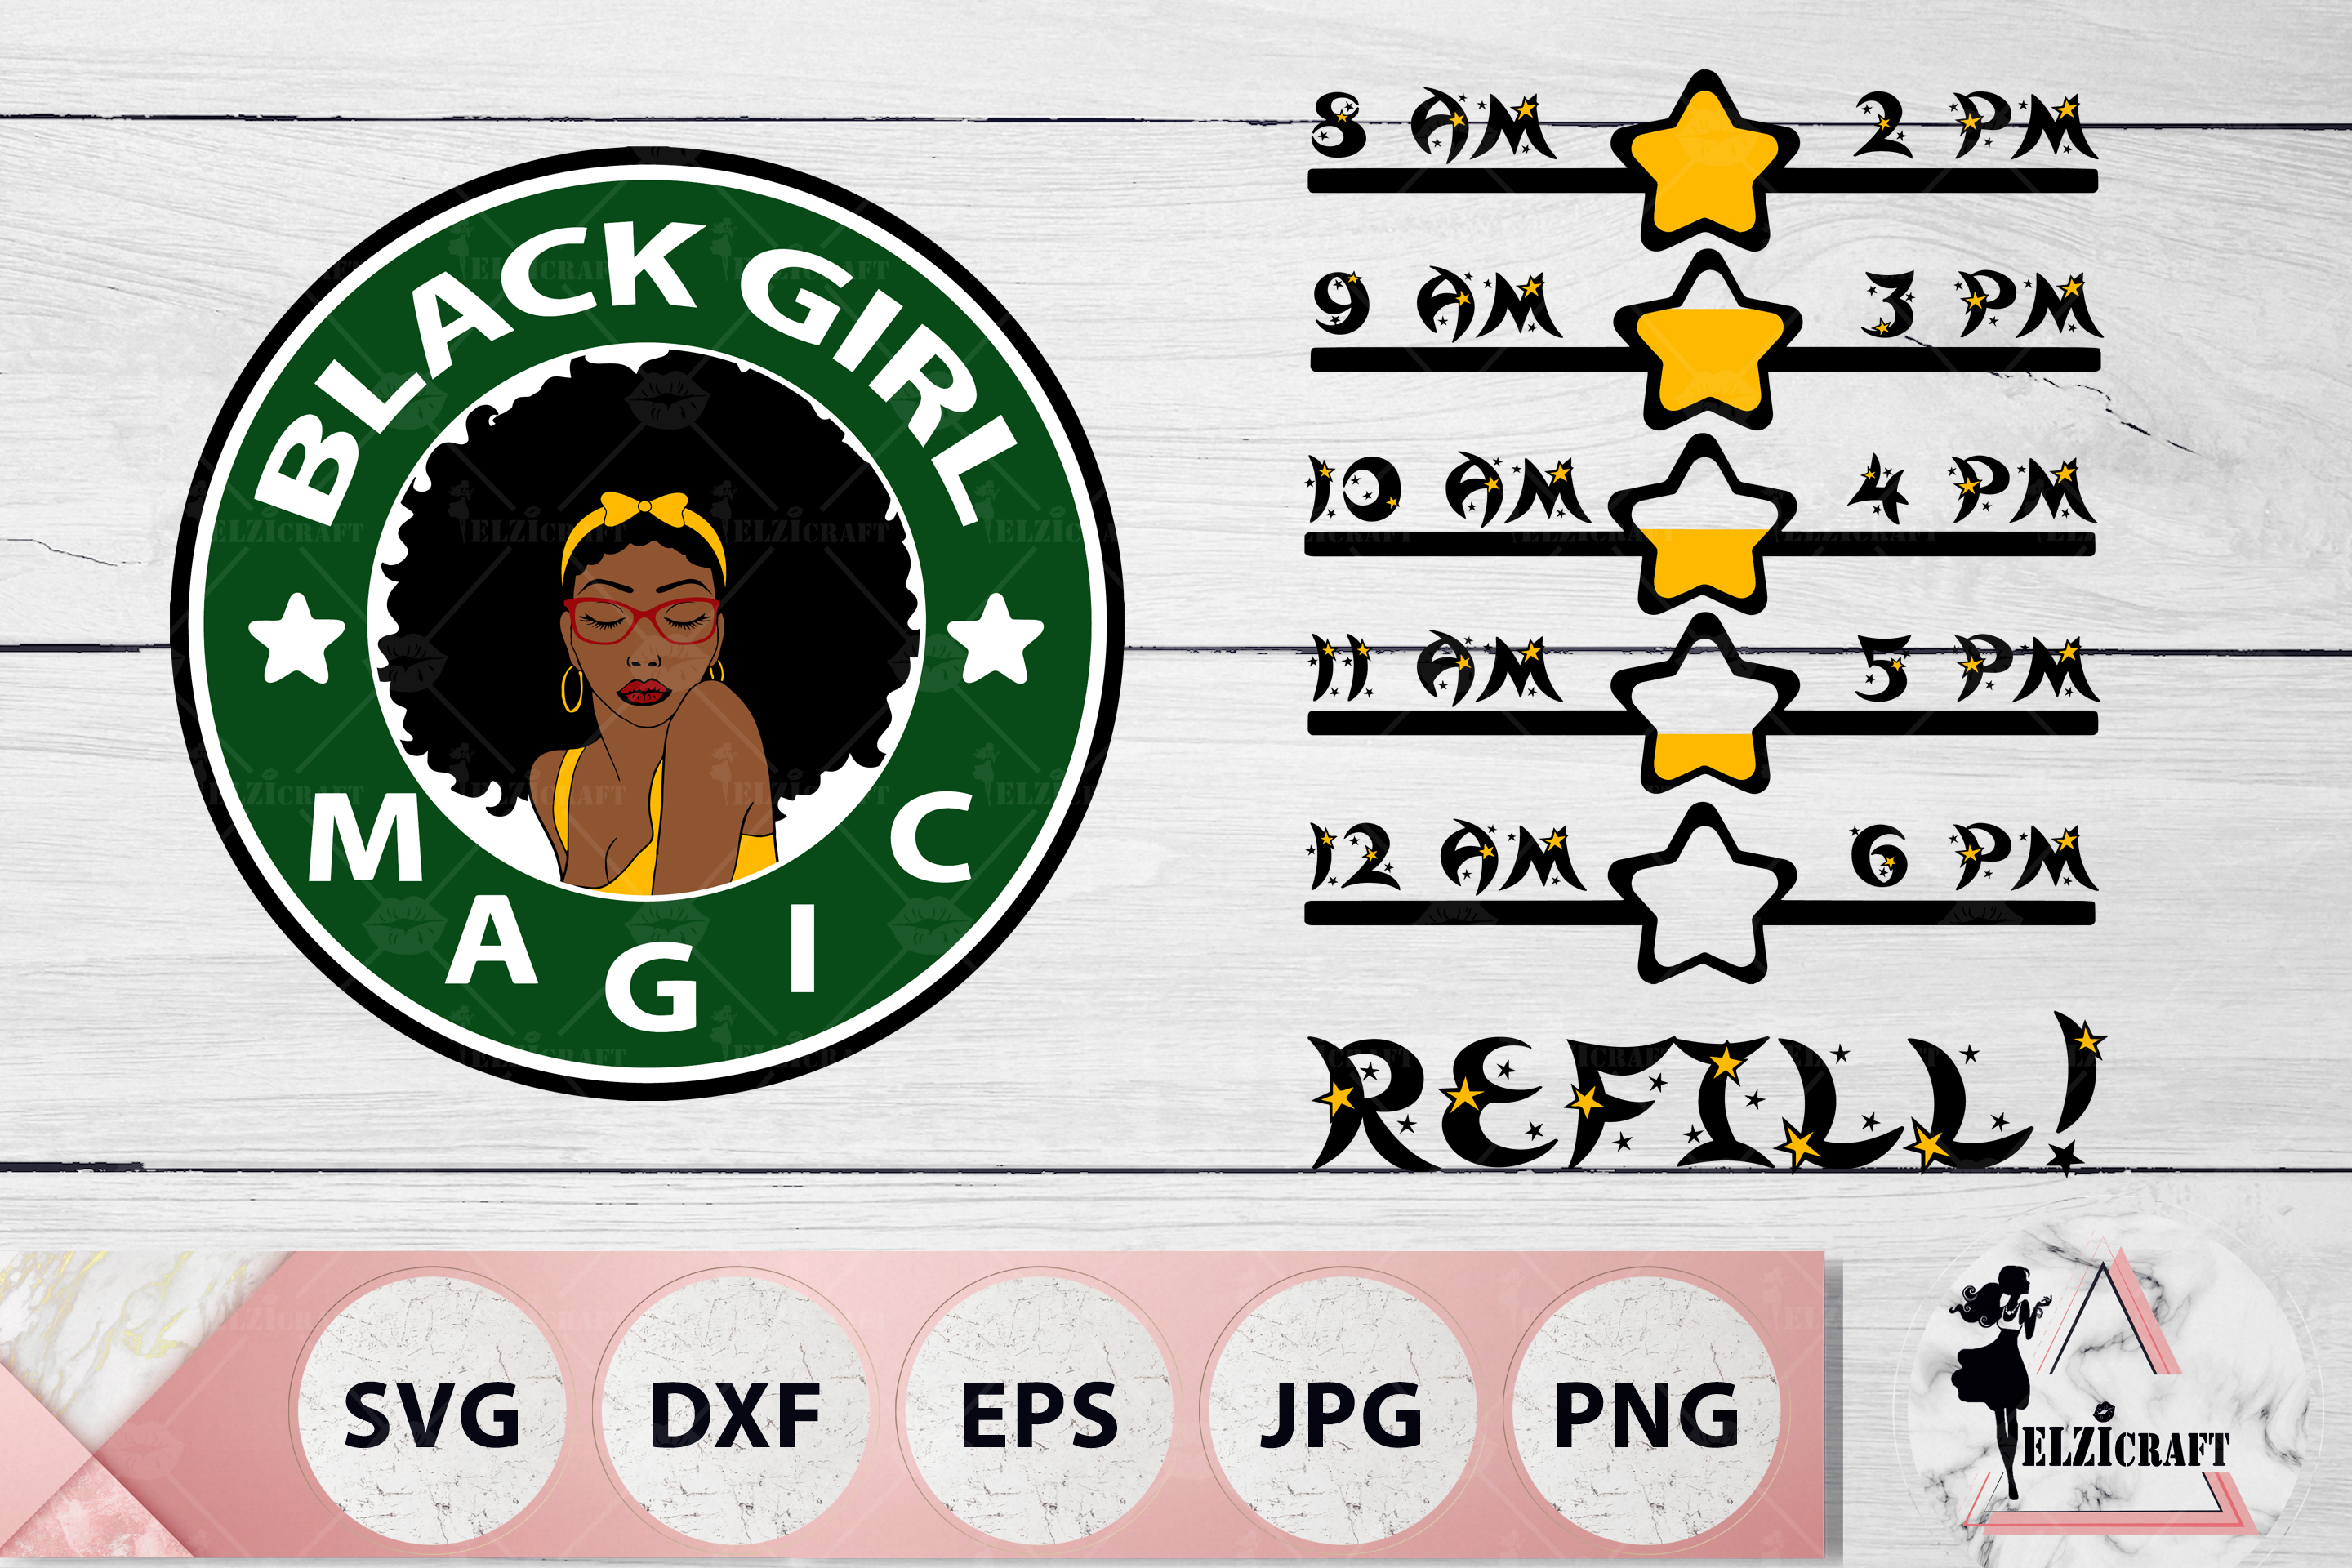 Water Bottle Tracker Black Girl Magic, Afro Woman SVG Files example image 1